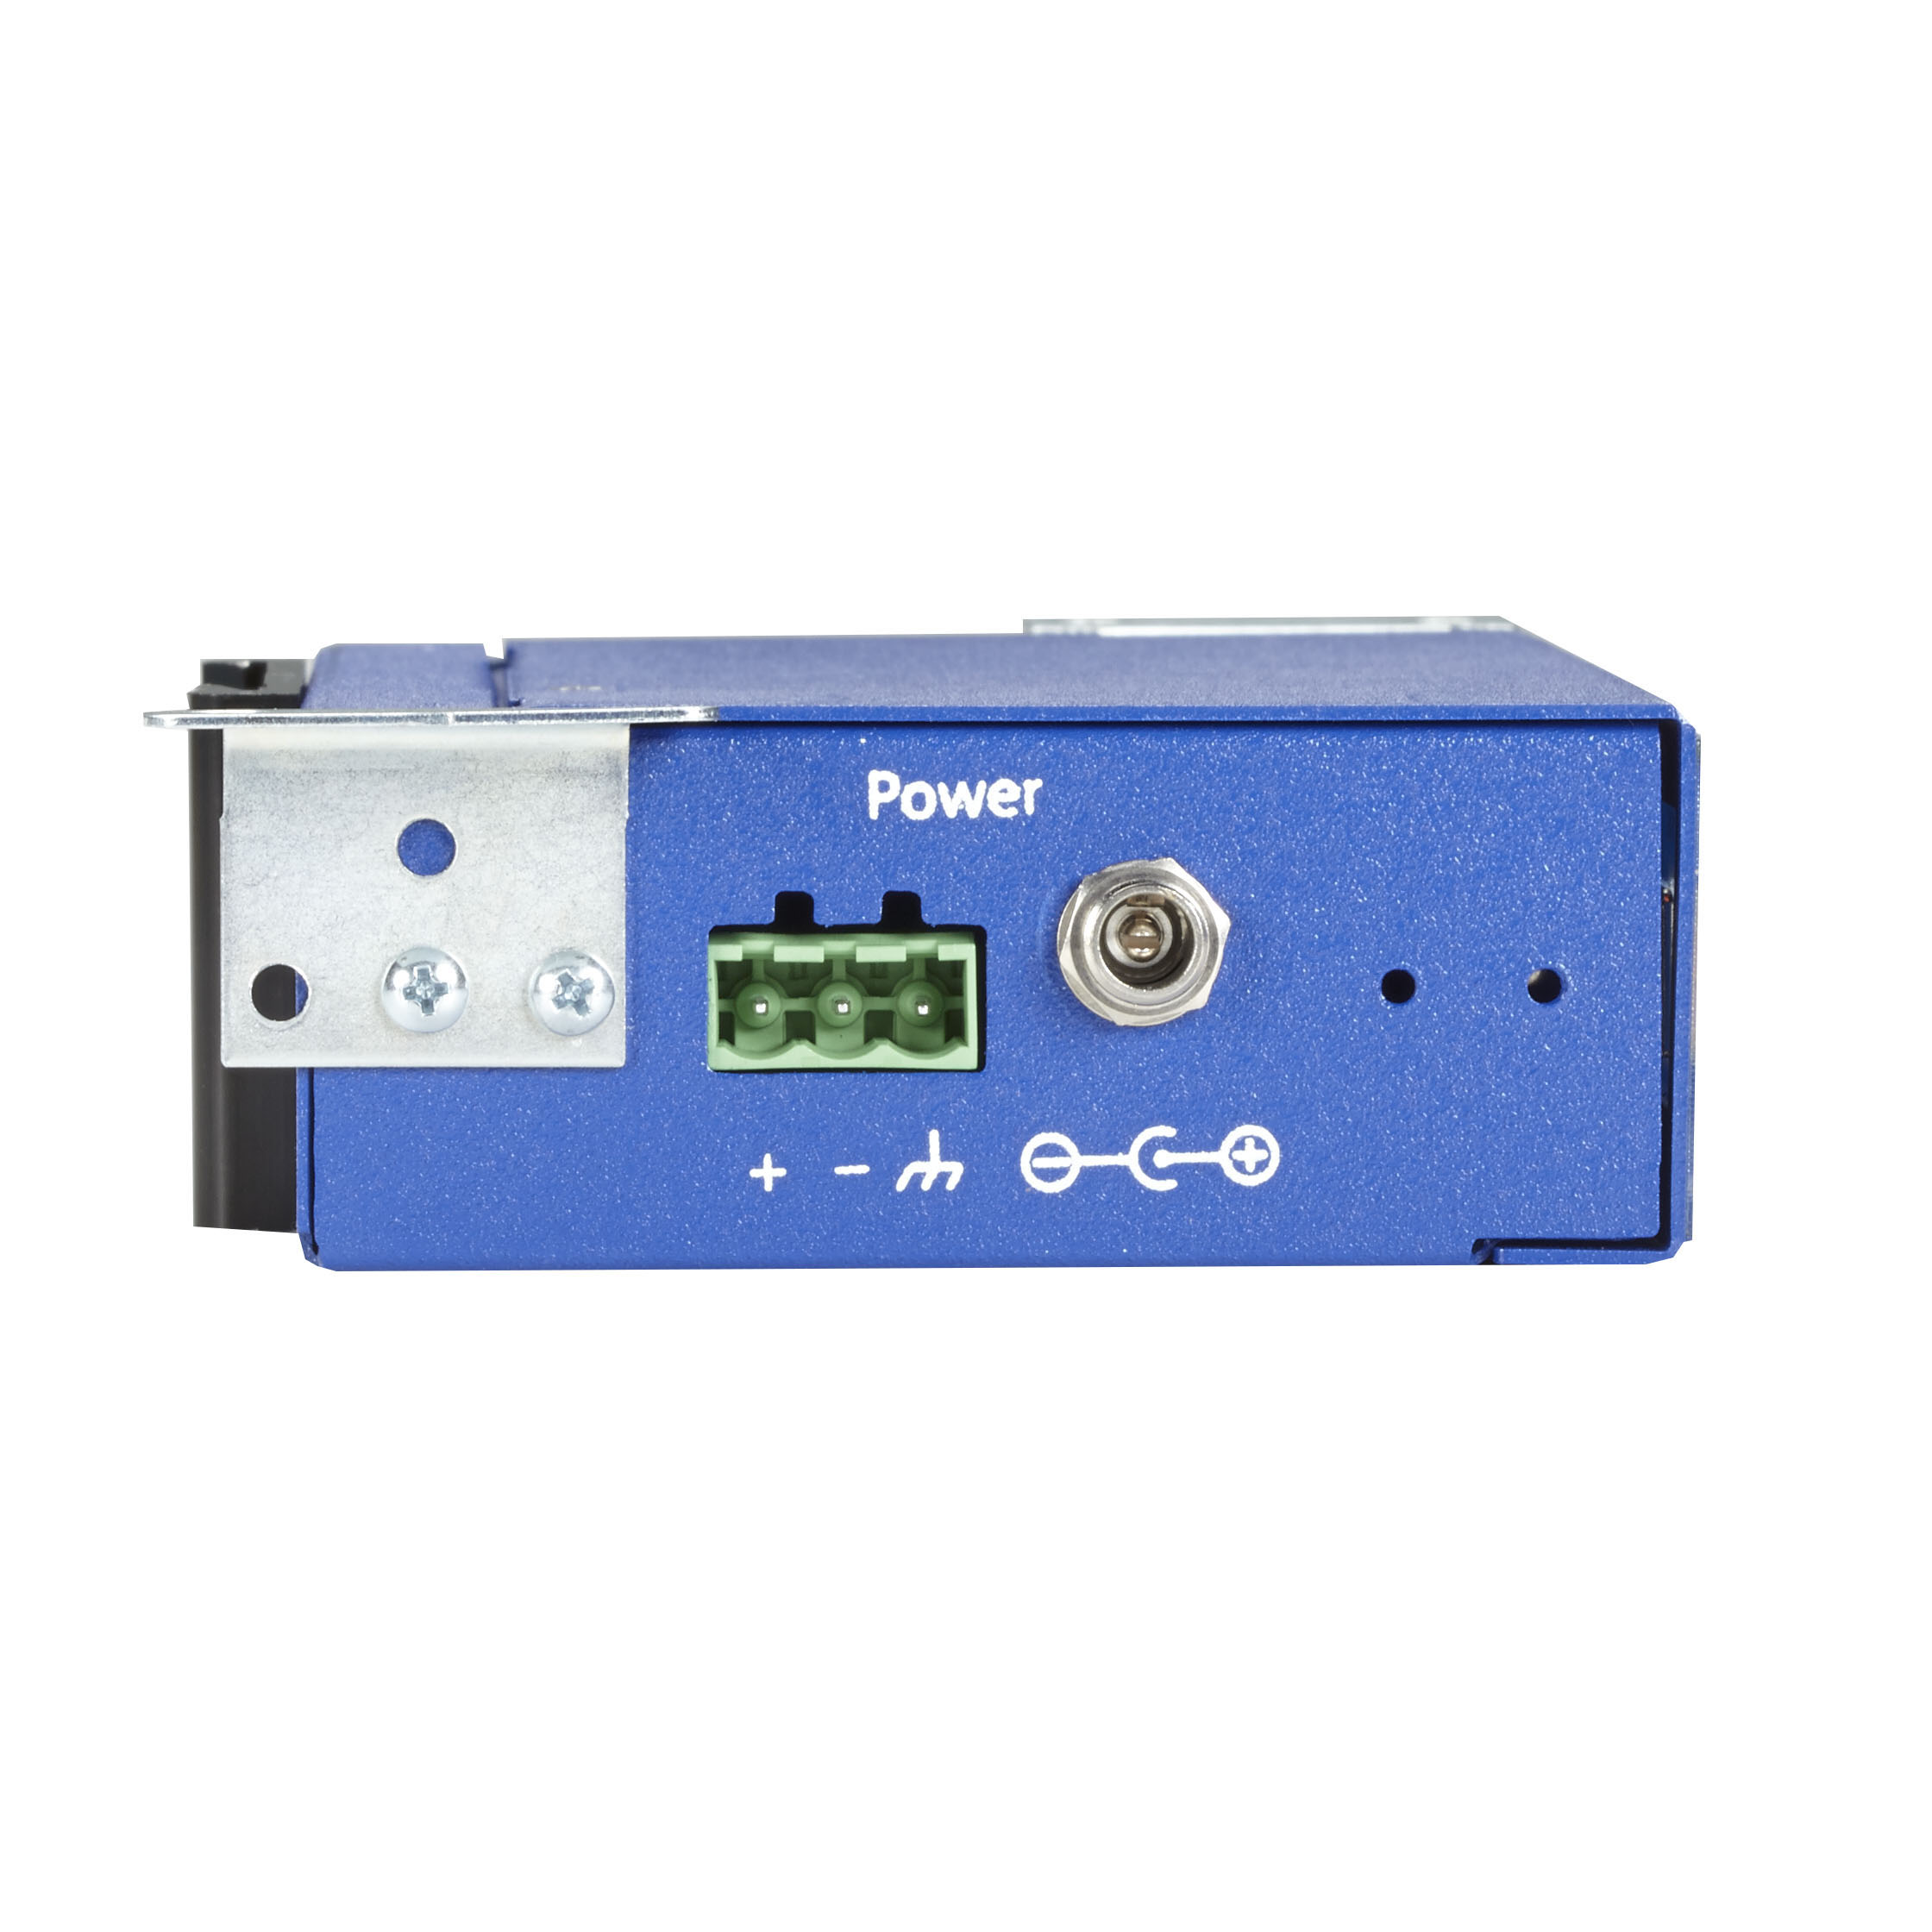 Industrial Usb To Rs232 Rs422 485 Converter Db9 2 Port Black Box Serial Surge And Optical Isolation Additional Product Image